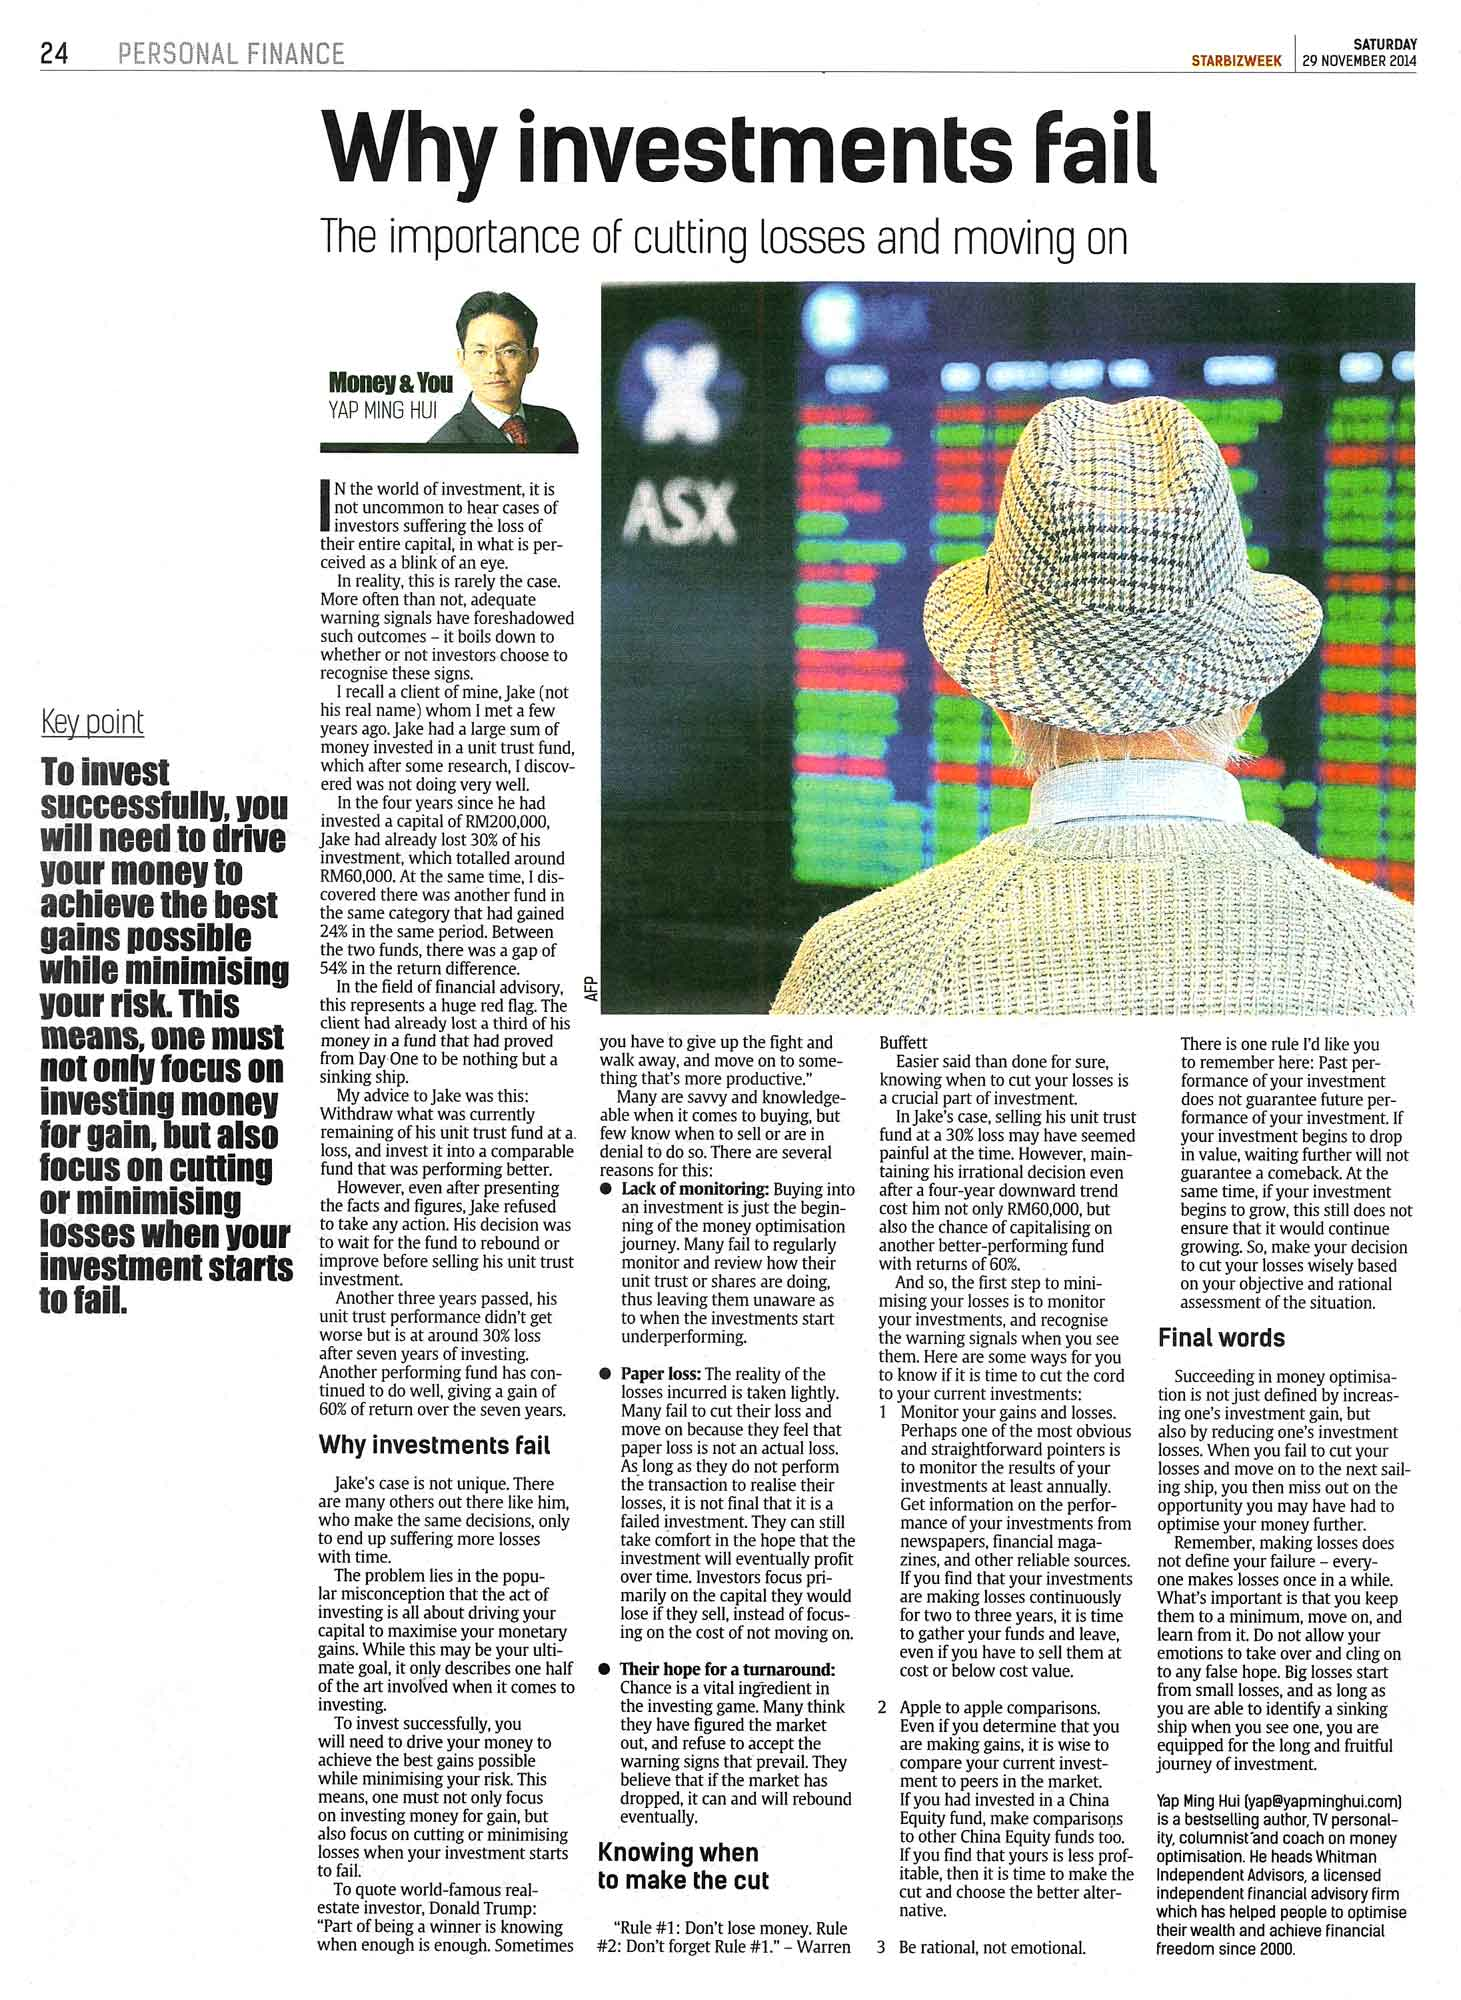 Why Investments Fail - 29 Nov 2014